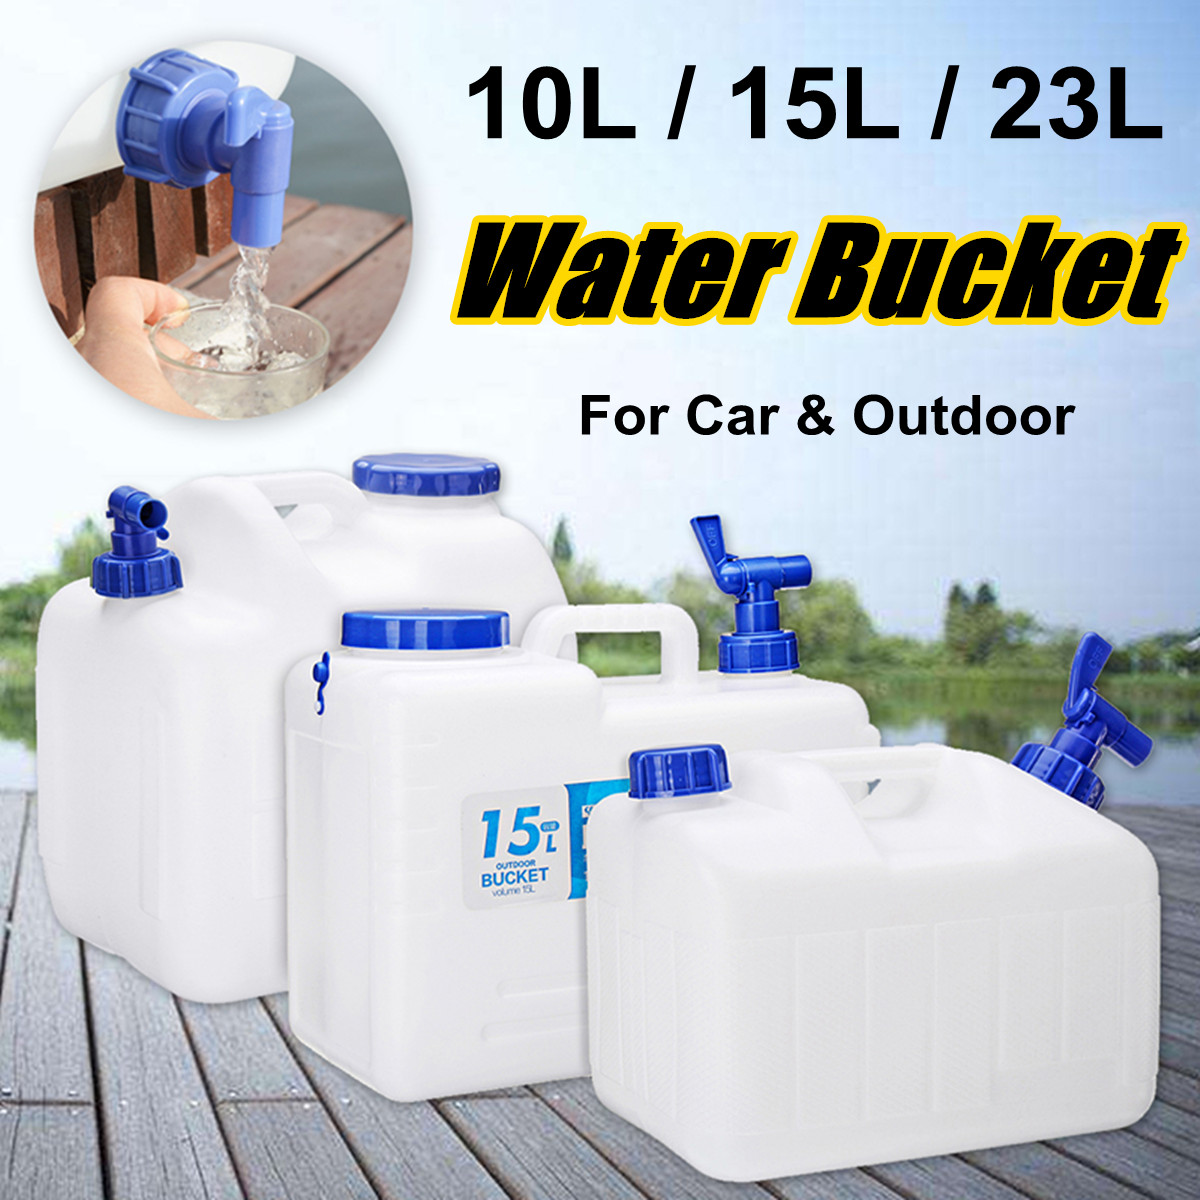 Portable Outdoor Camping Car Water Carrier Bucket Canister Storage Container Hiking Travel With Handle Water Tap 10/15/23L